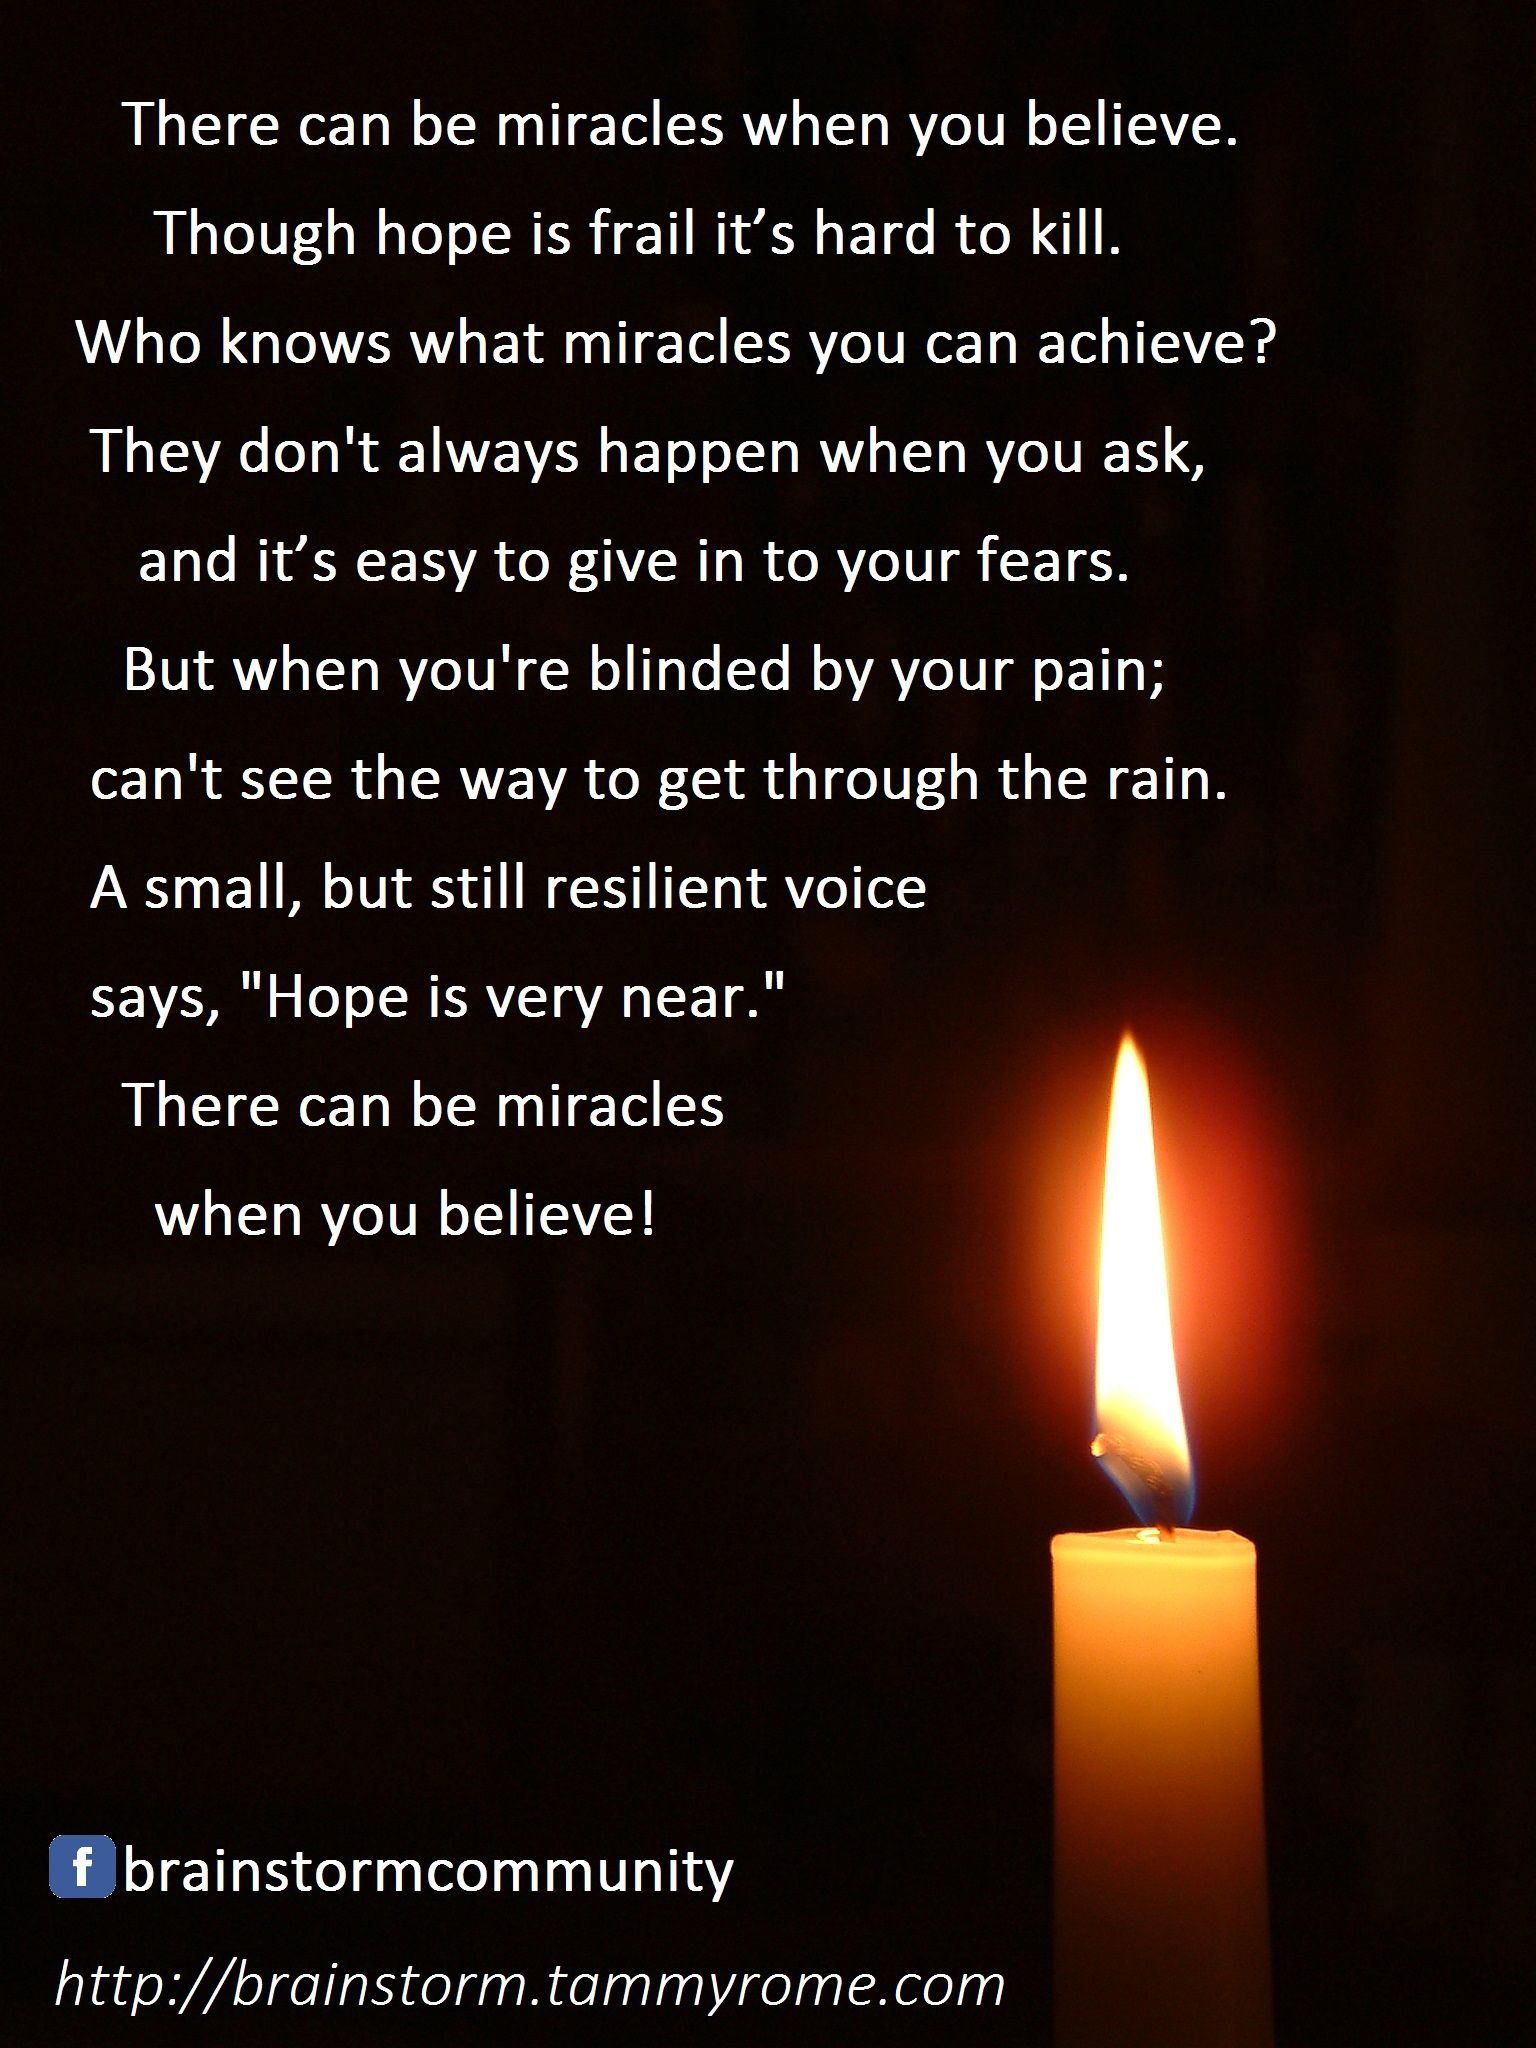 There Can Be Miracles When You Believe Quotes Quotes Quotable